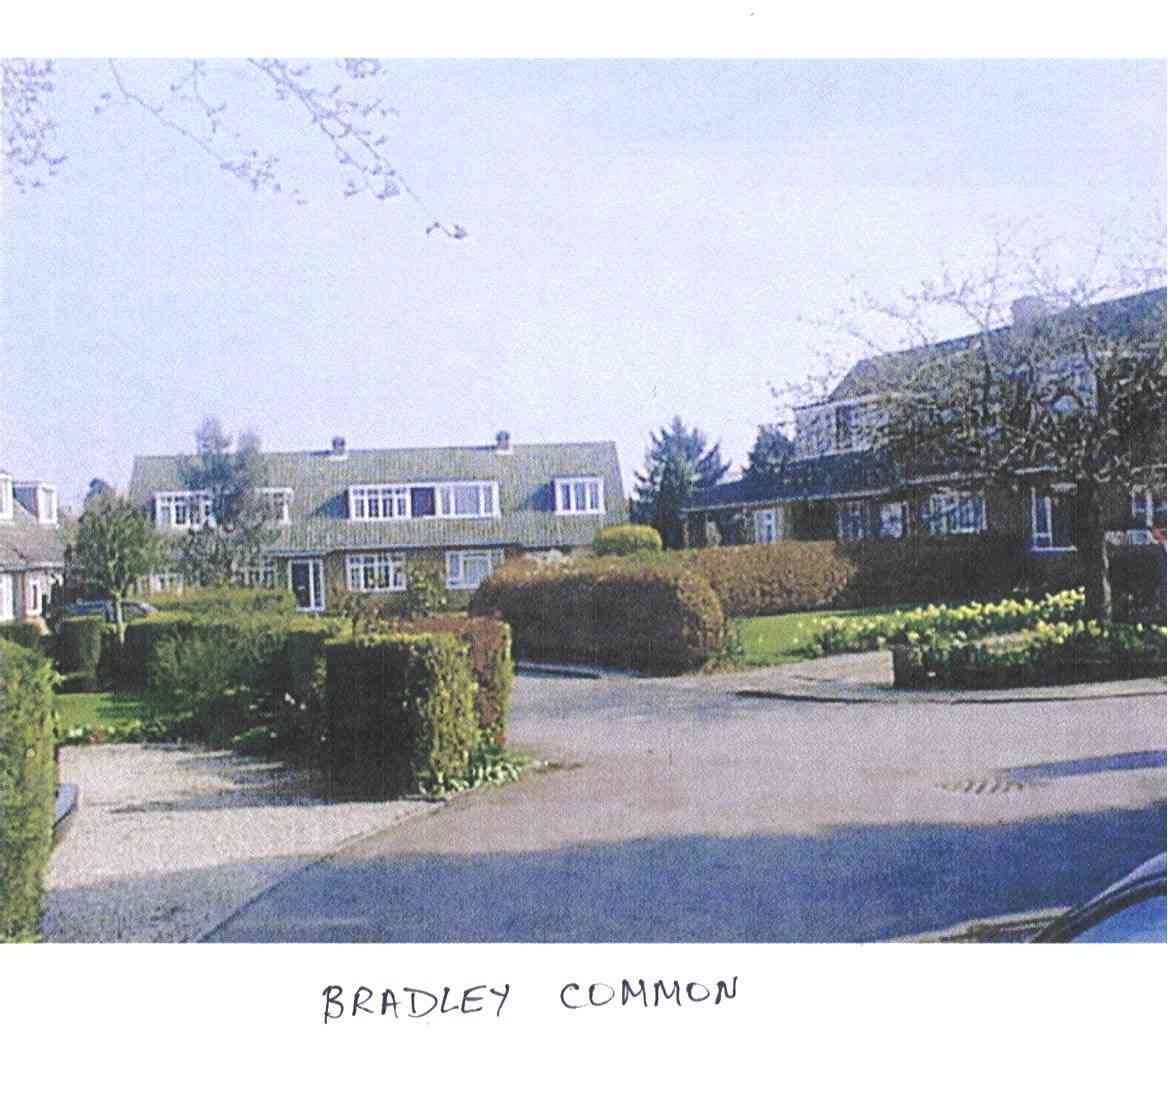 Bradley Common